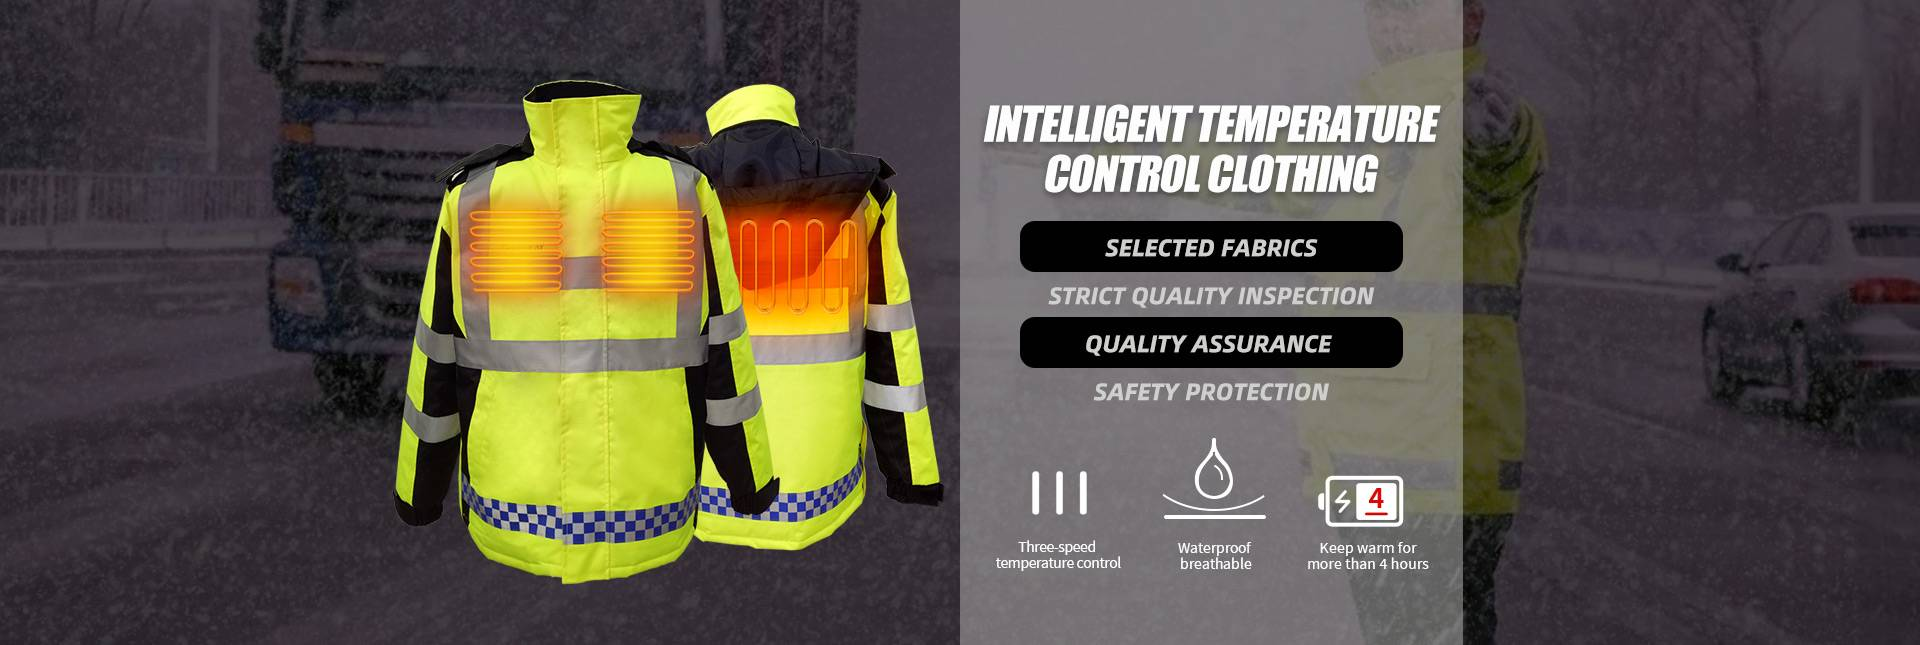 Heated Working Clothing